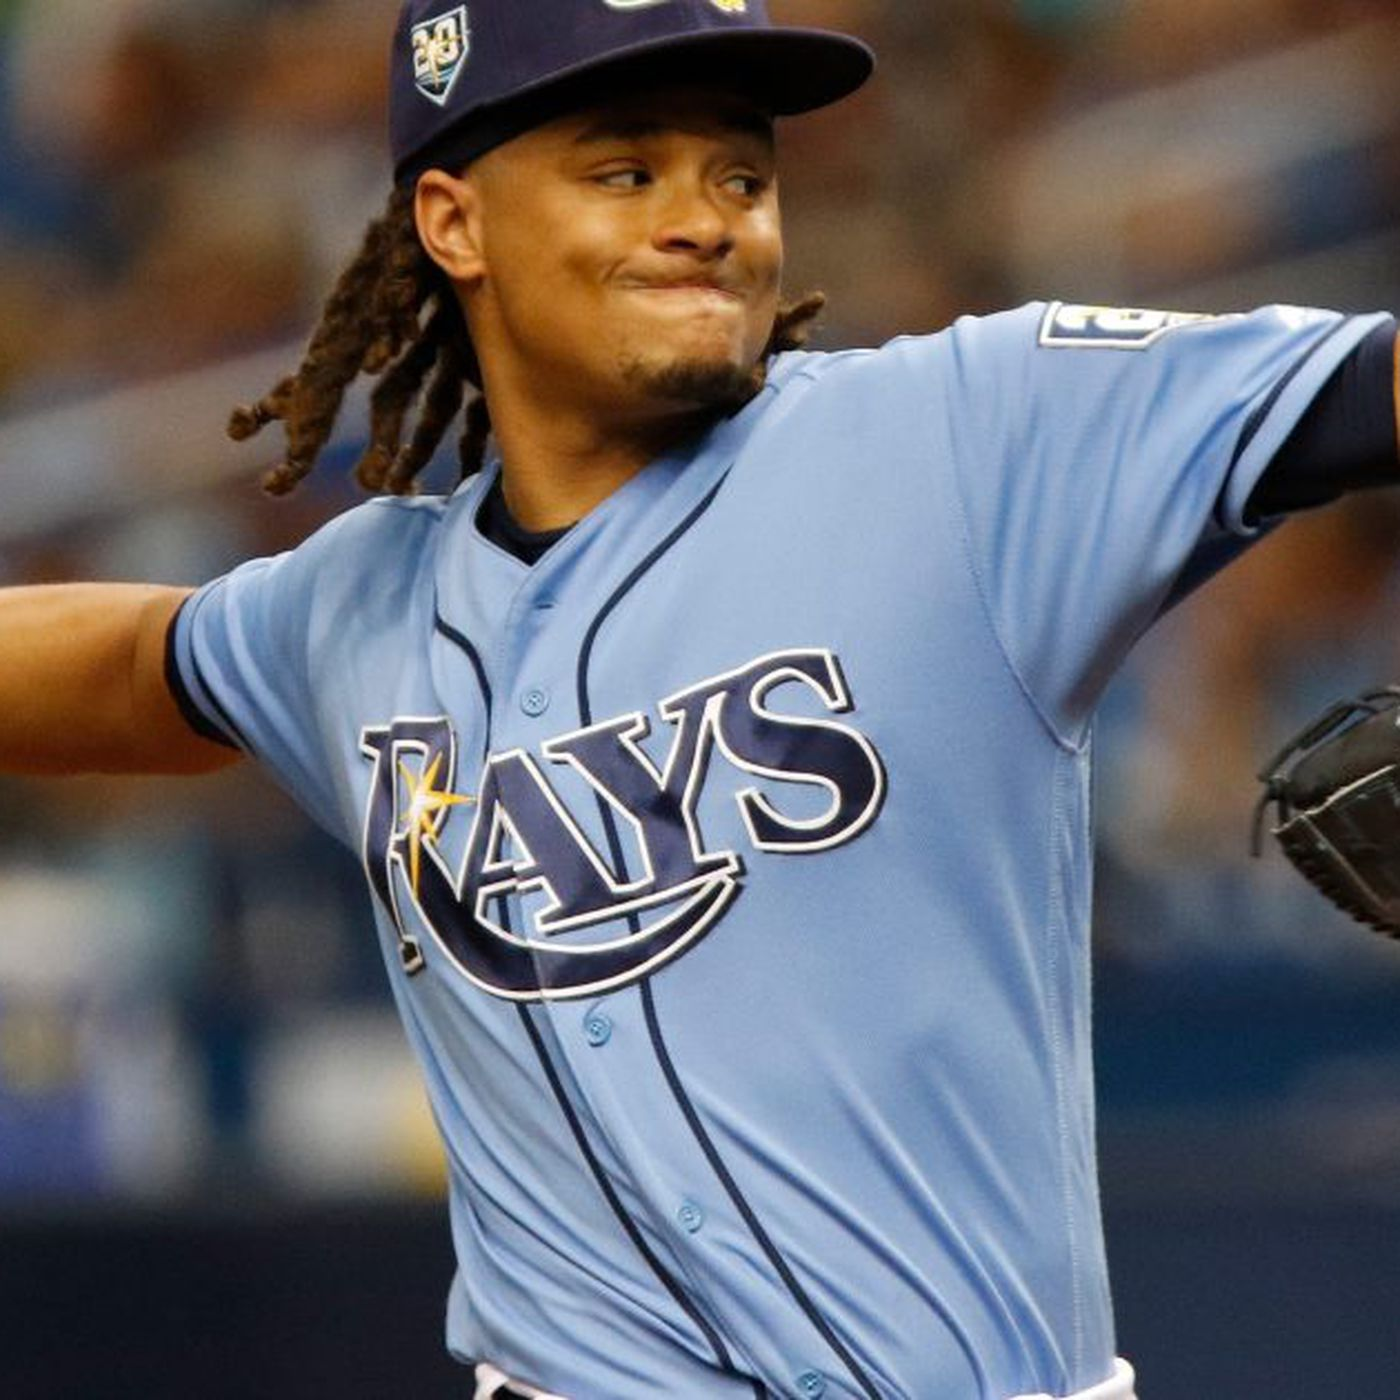 100% authentic af9f8 36c36 Chris Archer trade: Pirates acquire Rays starter before ...